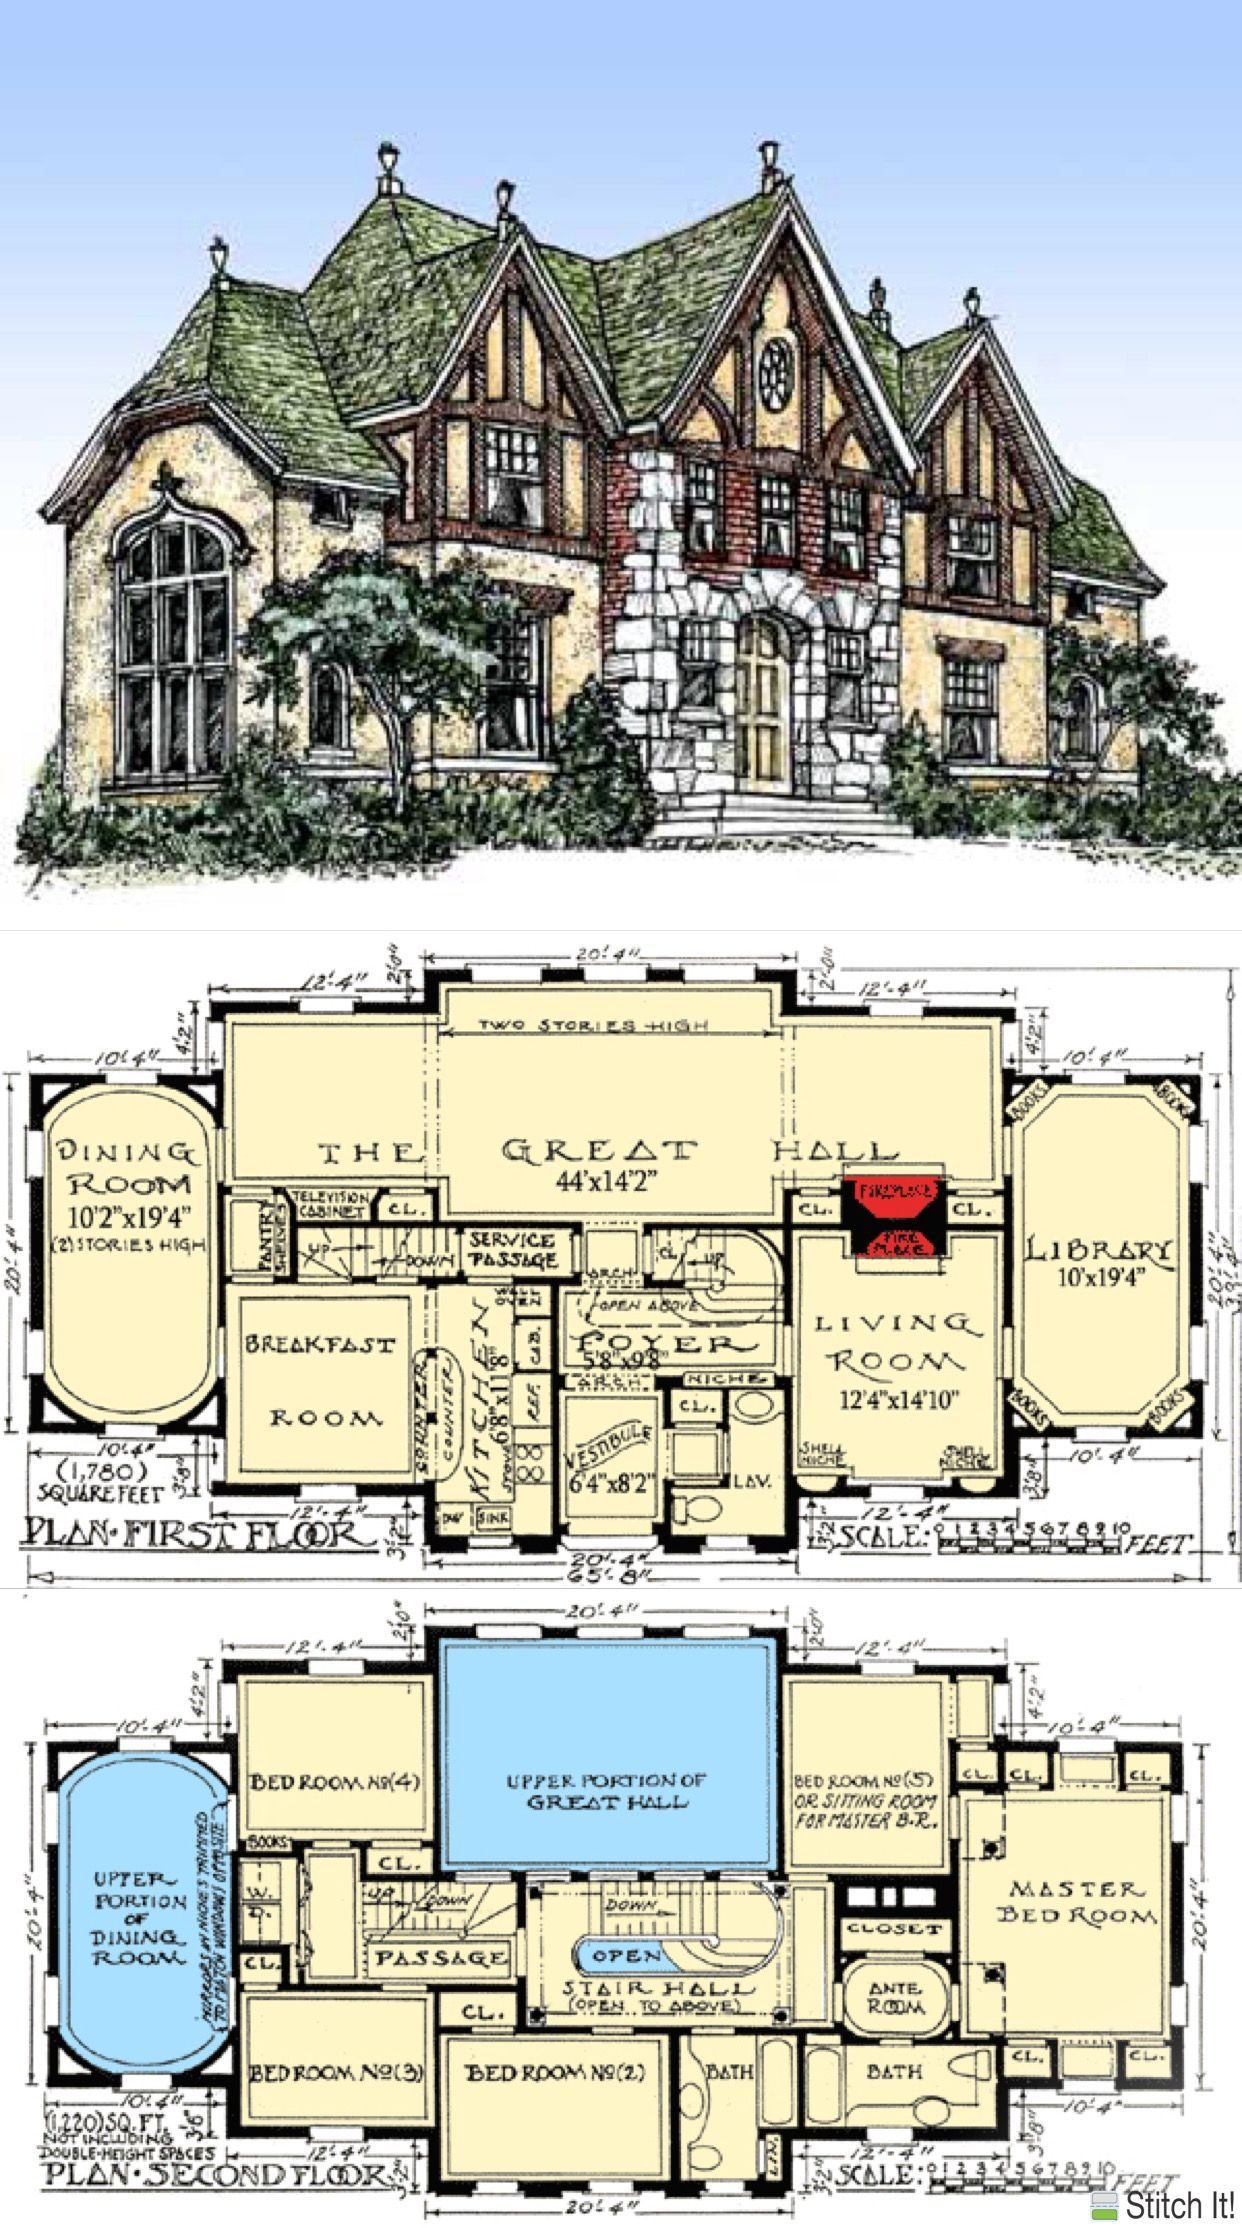 I Want To Make This House In The Sims In 2020 Sims House Plans House Blueprints Vintage House Plans